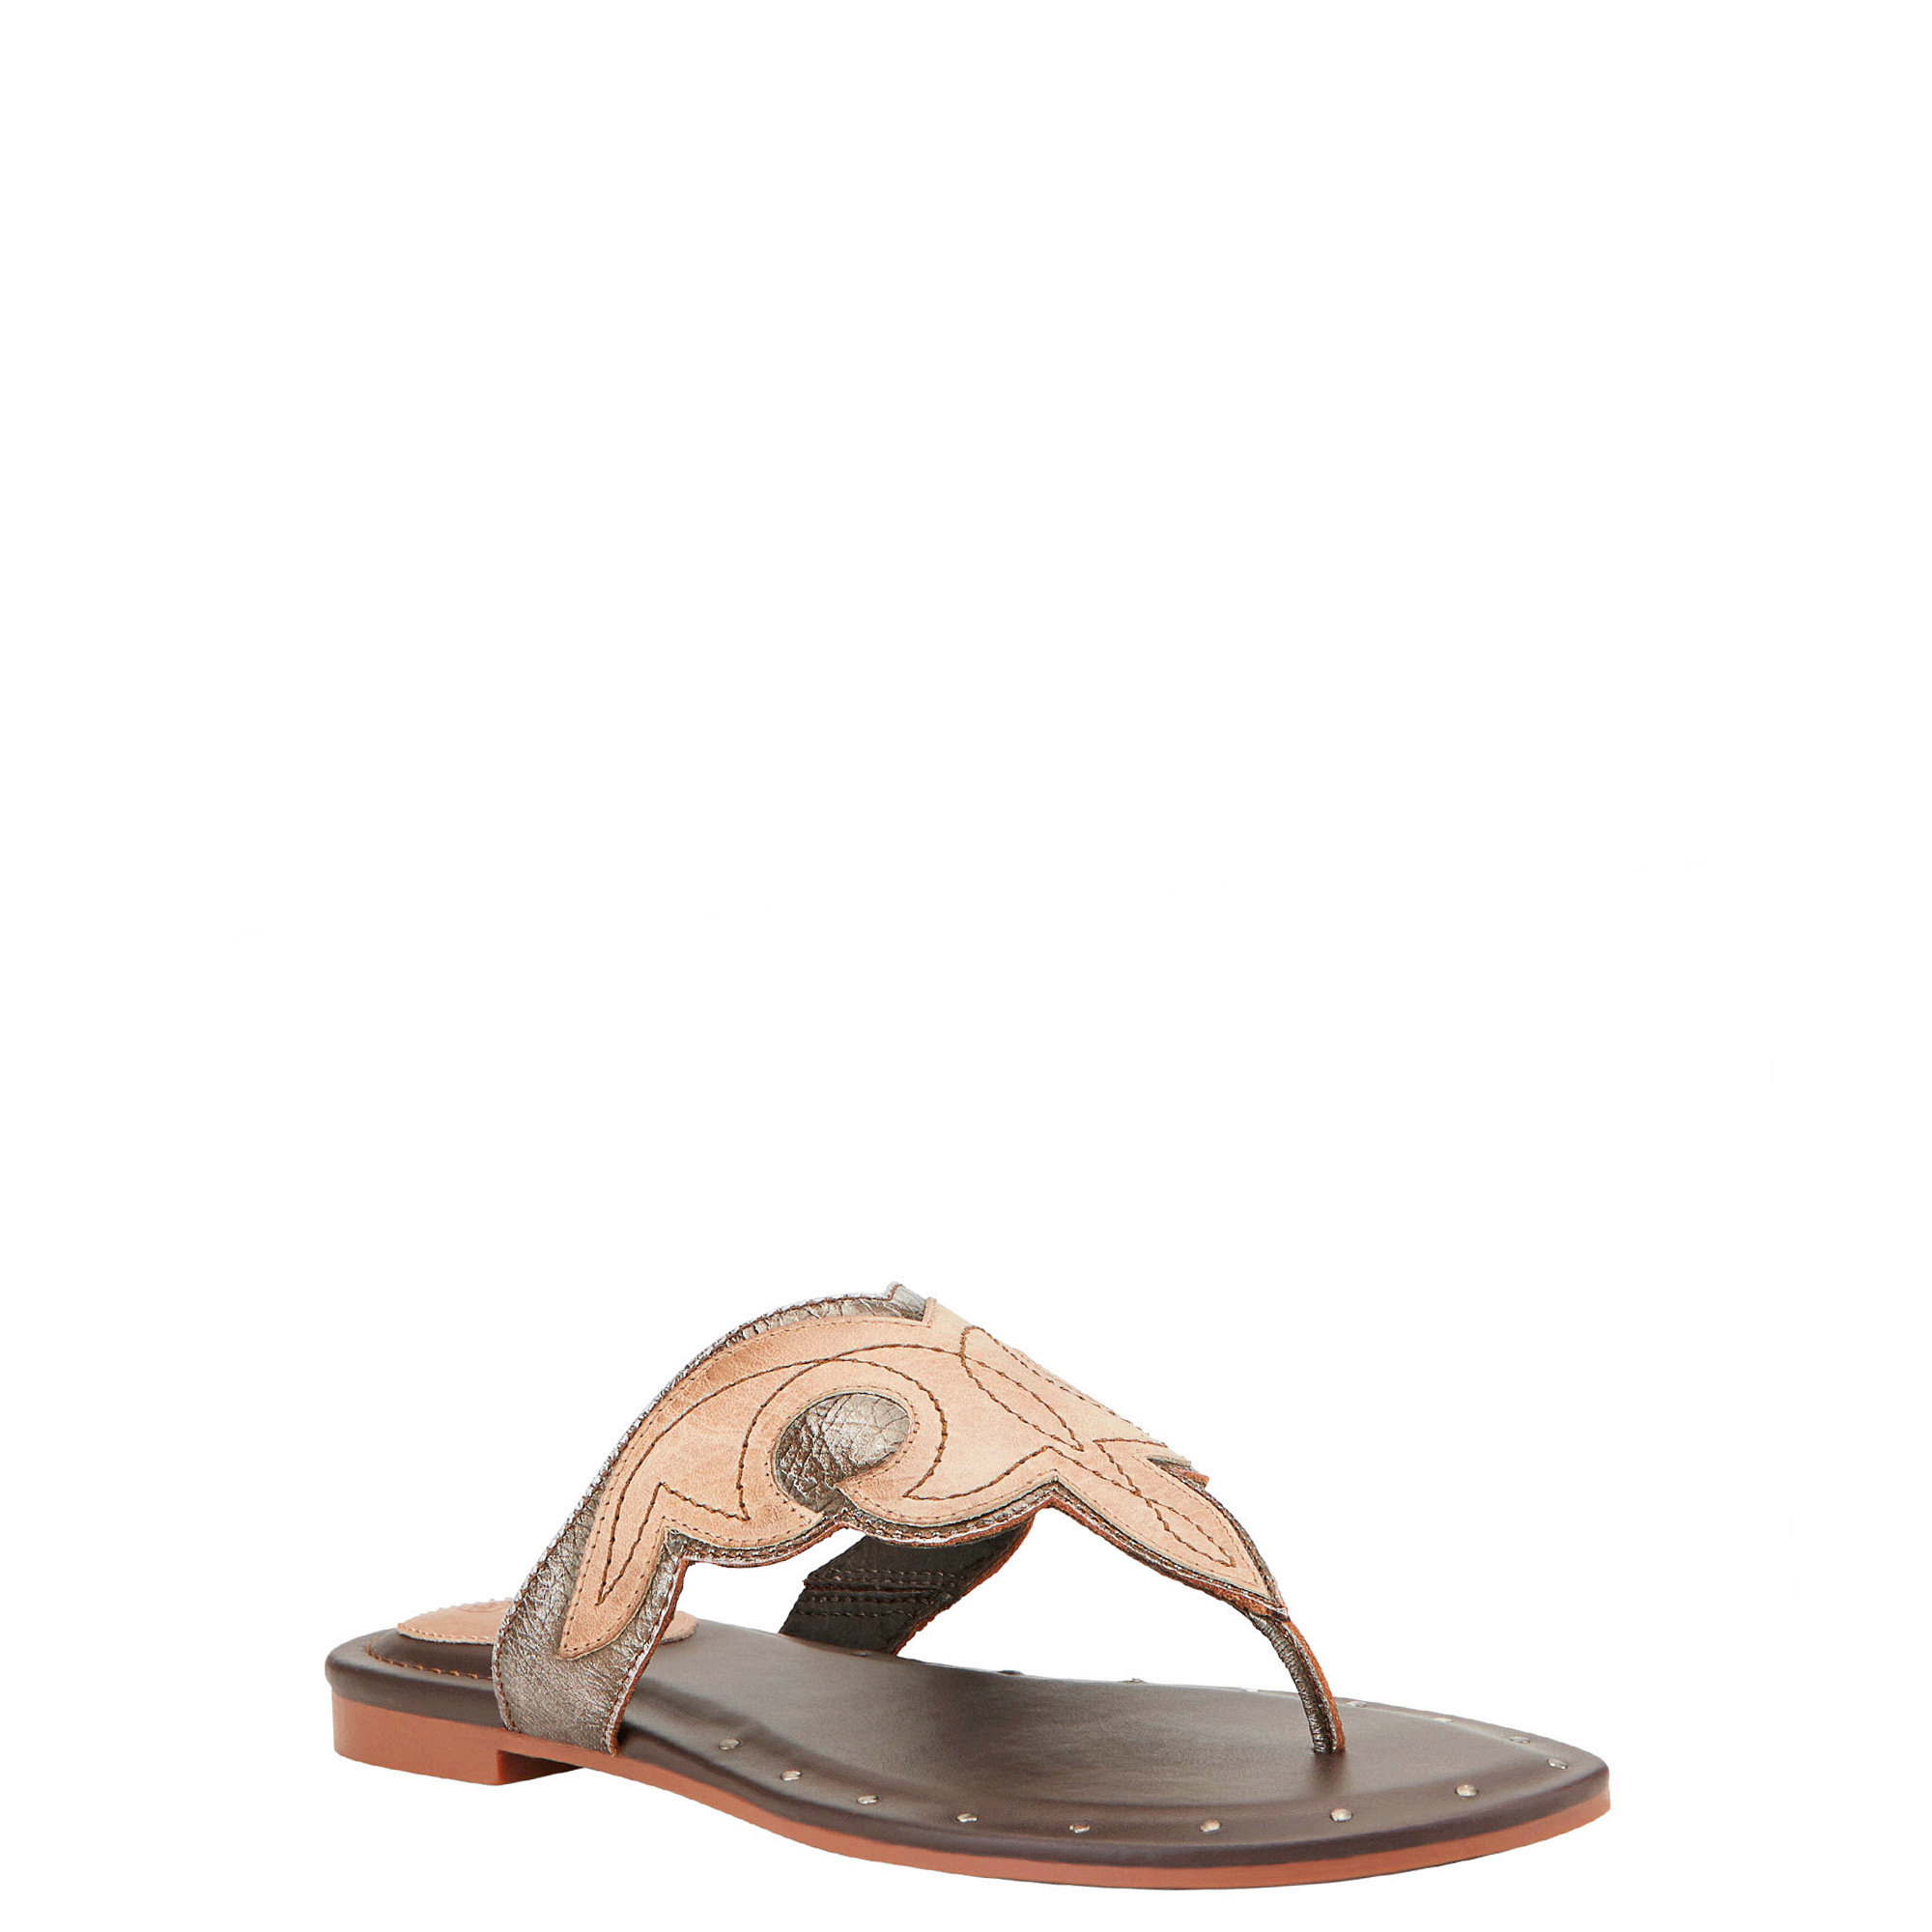 Ariat Women's Mica Sandal